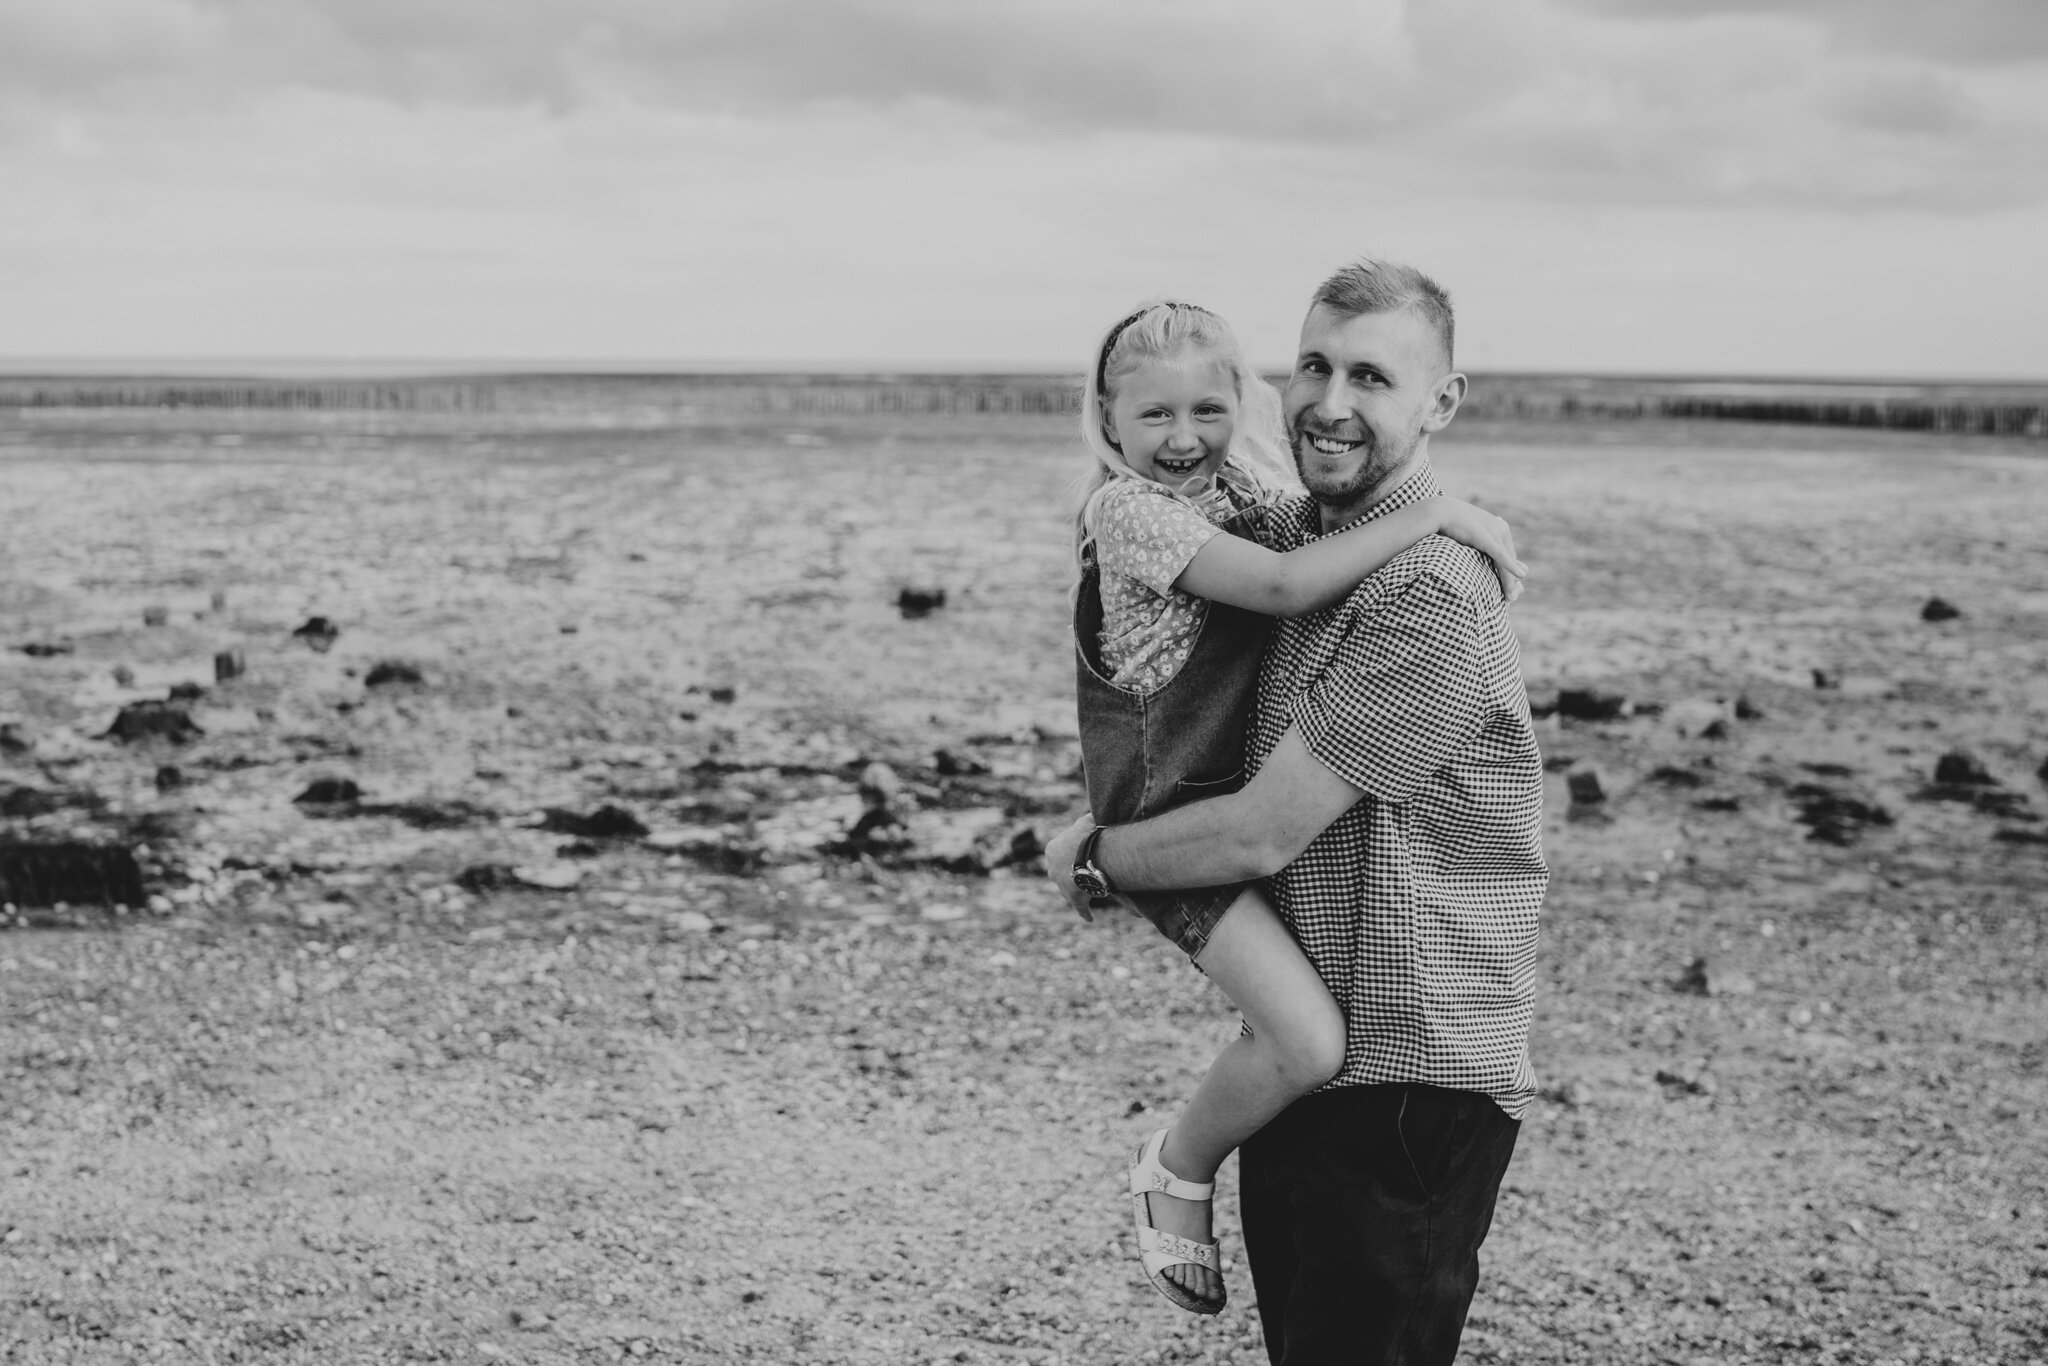 celebratory-beach-family-session-thomson-family-cudmore-grove-east-mersea-grace-elizabeth-colchester-essex-devon-suffolk-and-norfolk-alternative-wedding-and-family-photographer (25 of 53).jpg